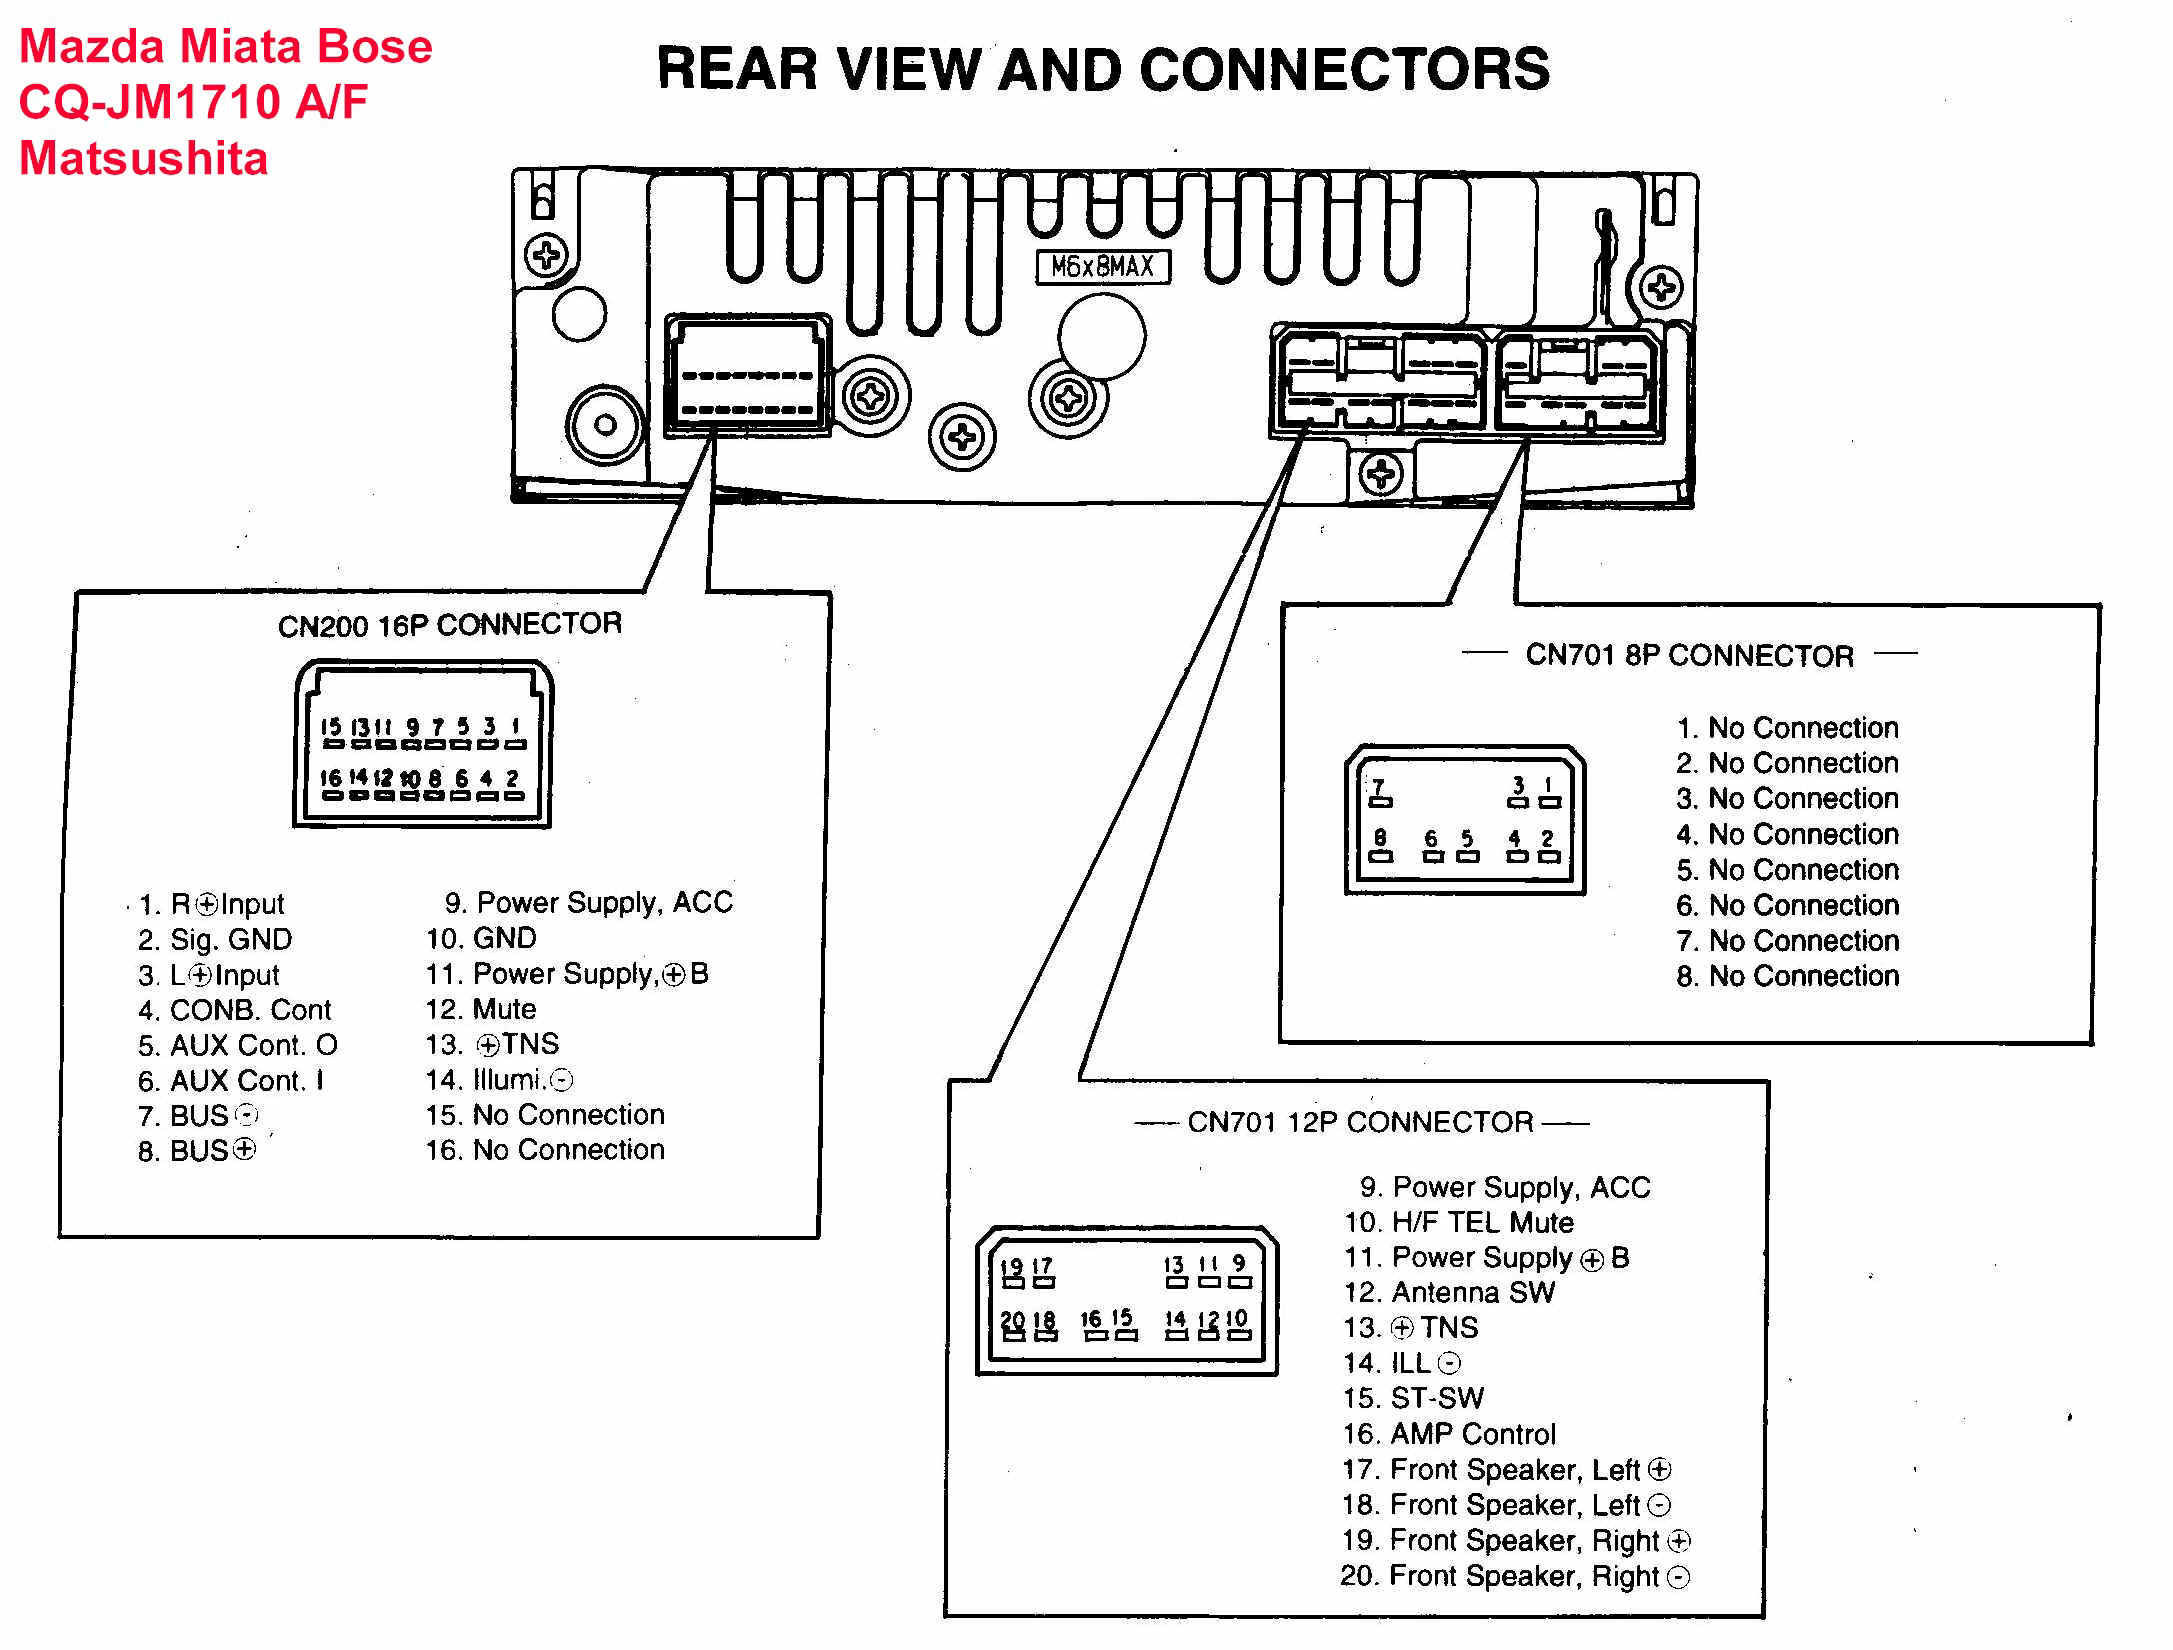 2006 chevy silverado bose wiring diagram on 2006 images free Stereo Wiring Harness For 2004 Chevy Silverado 2006 chevy silverado bose wiring diagram on car stereo wiring harness diagram 2004 silverado trailer wiring diagram 2006 chevy kodiak wiring diagram stereo wiring harness for 2004 chevy silverado